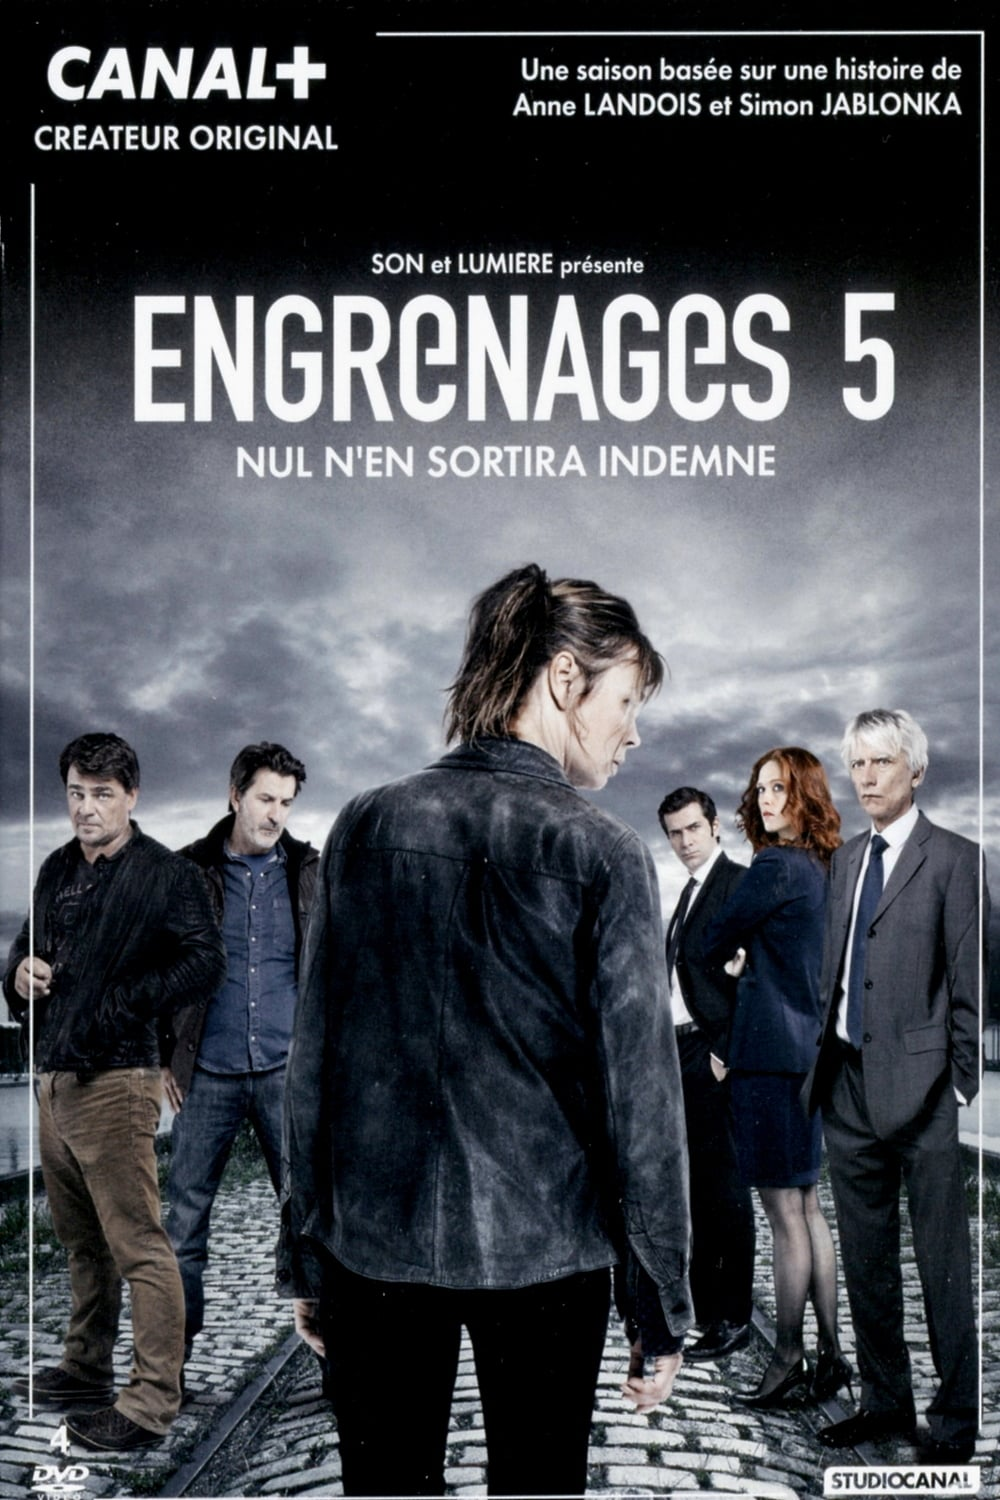 Engrenages Saison 5 - AlloCiné